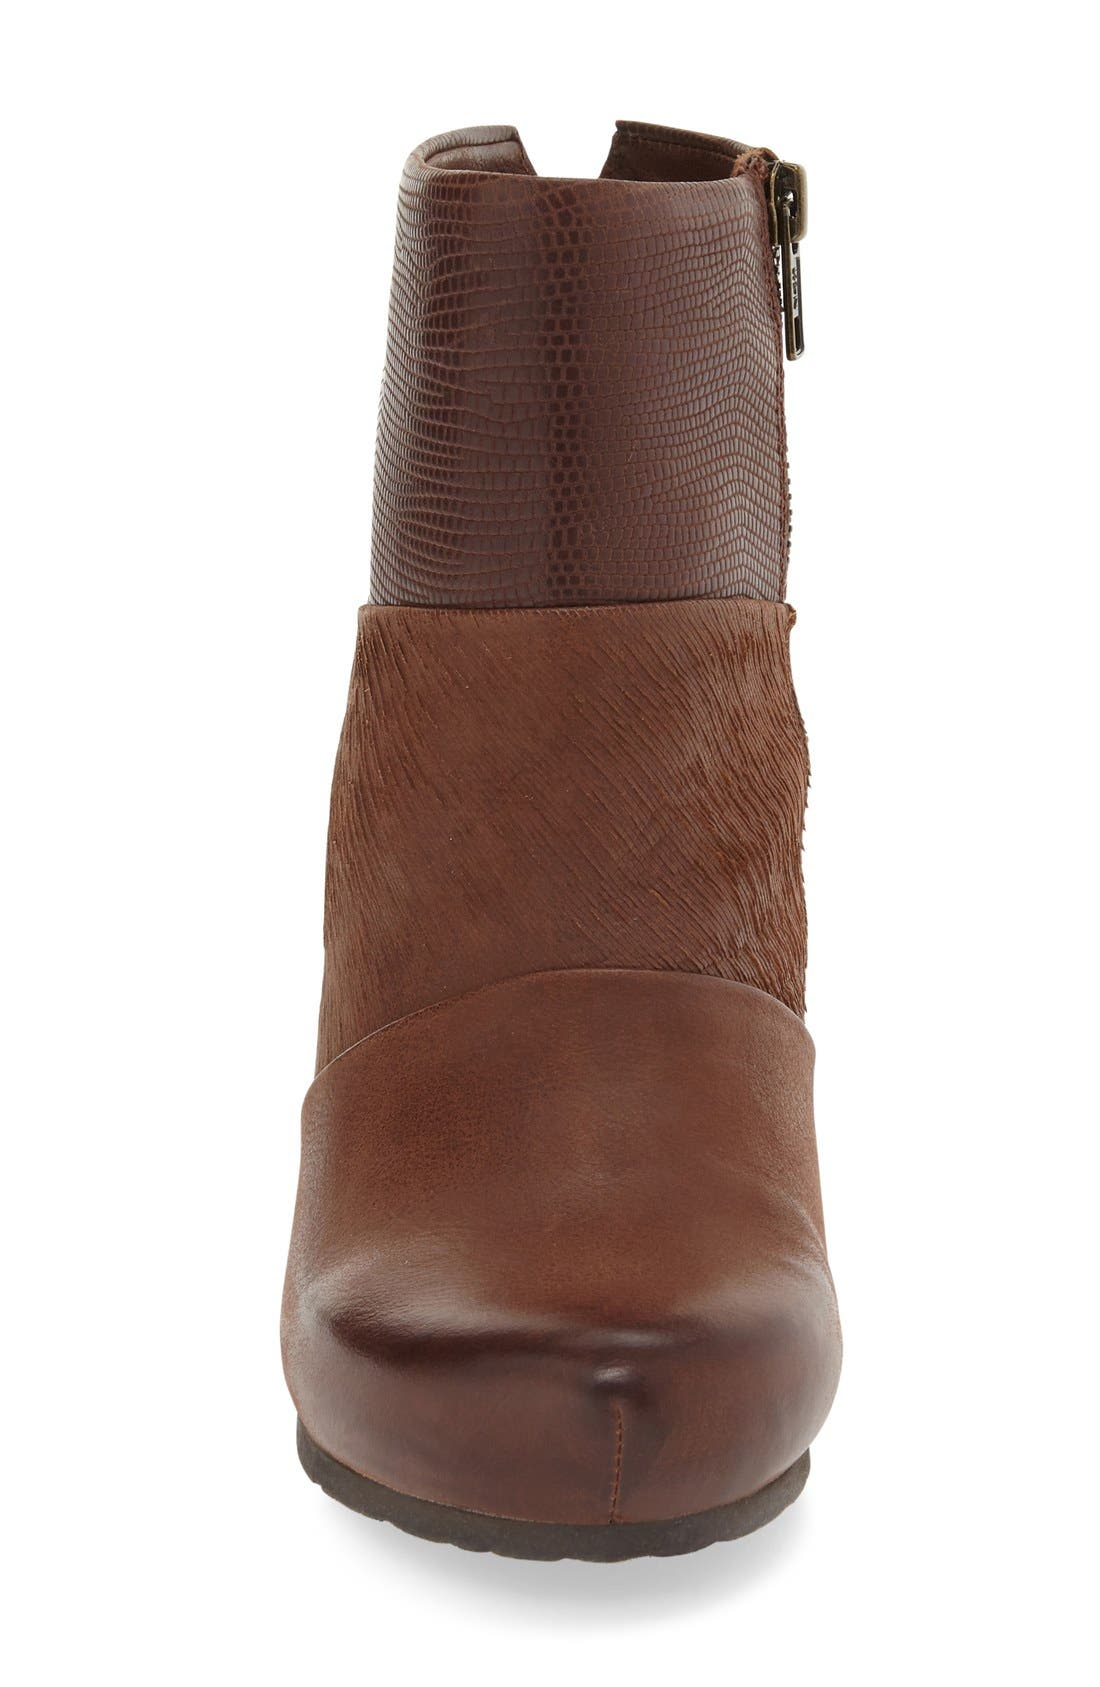 'Dharma' Wedge Bootie,                             Alternate thumbnail 3, color,                             Acorn Leather